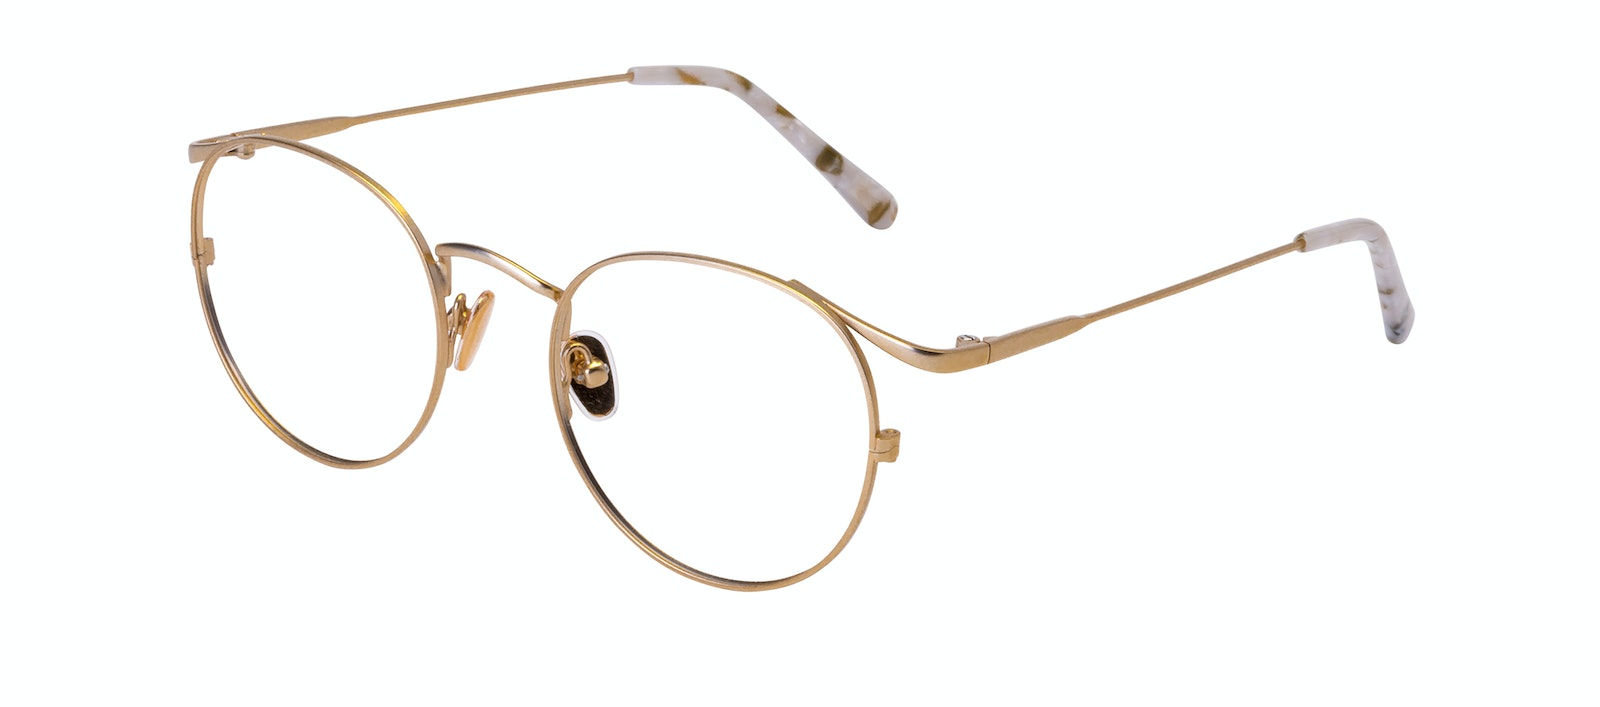 Affordable Fashion Glasses Round Eyeglasses Women Curve Gold Tilt